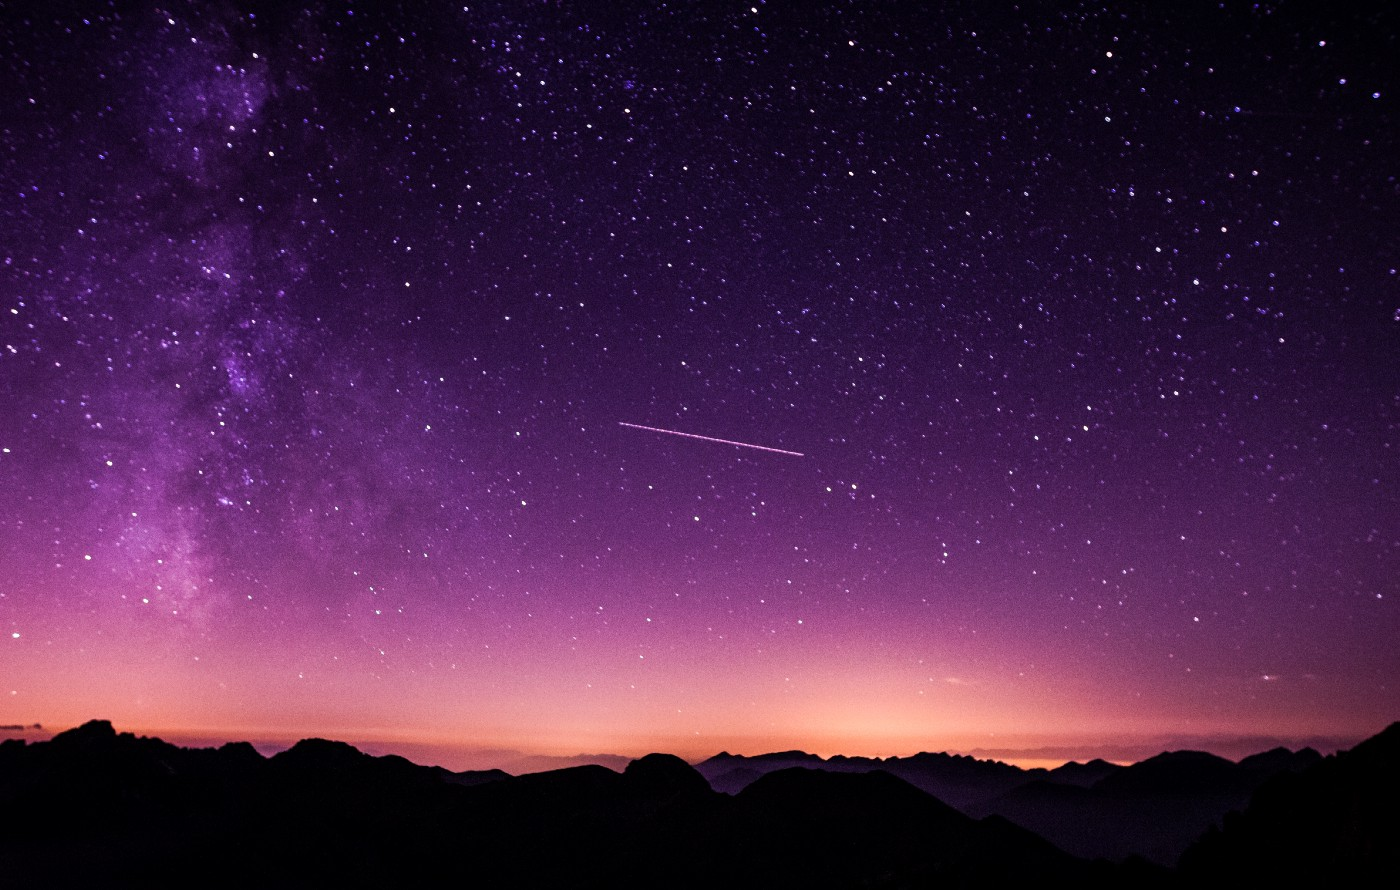 A beautiful view of the sky in the night with brigth stars